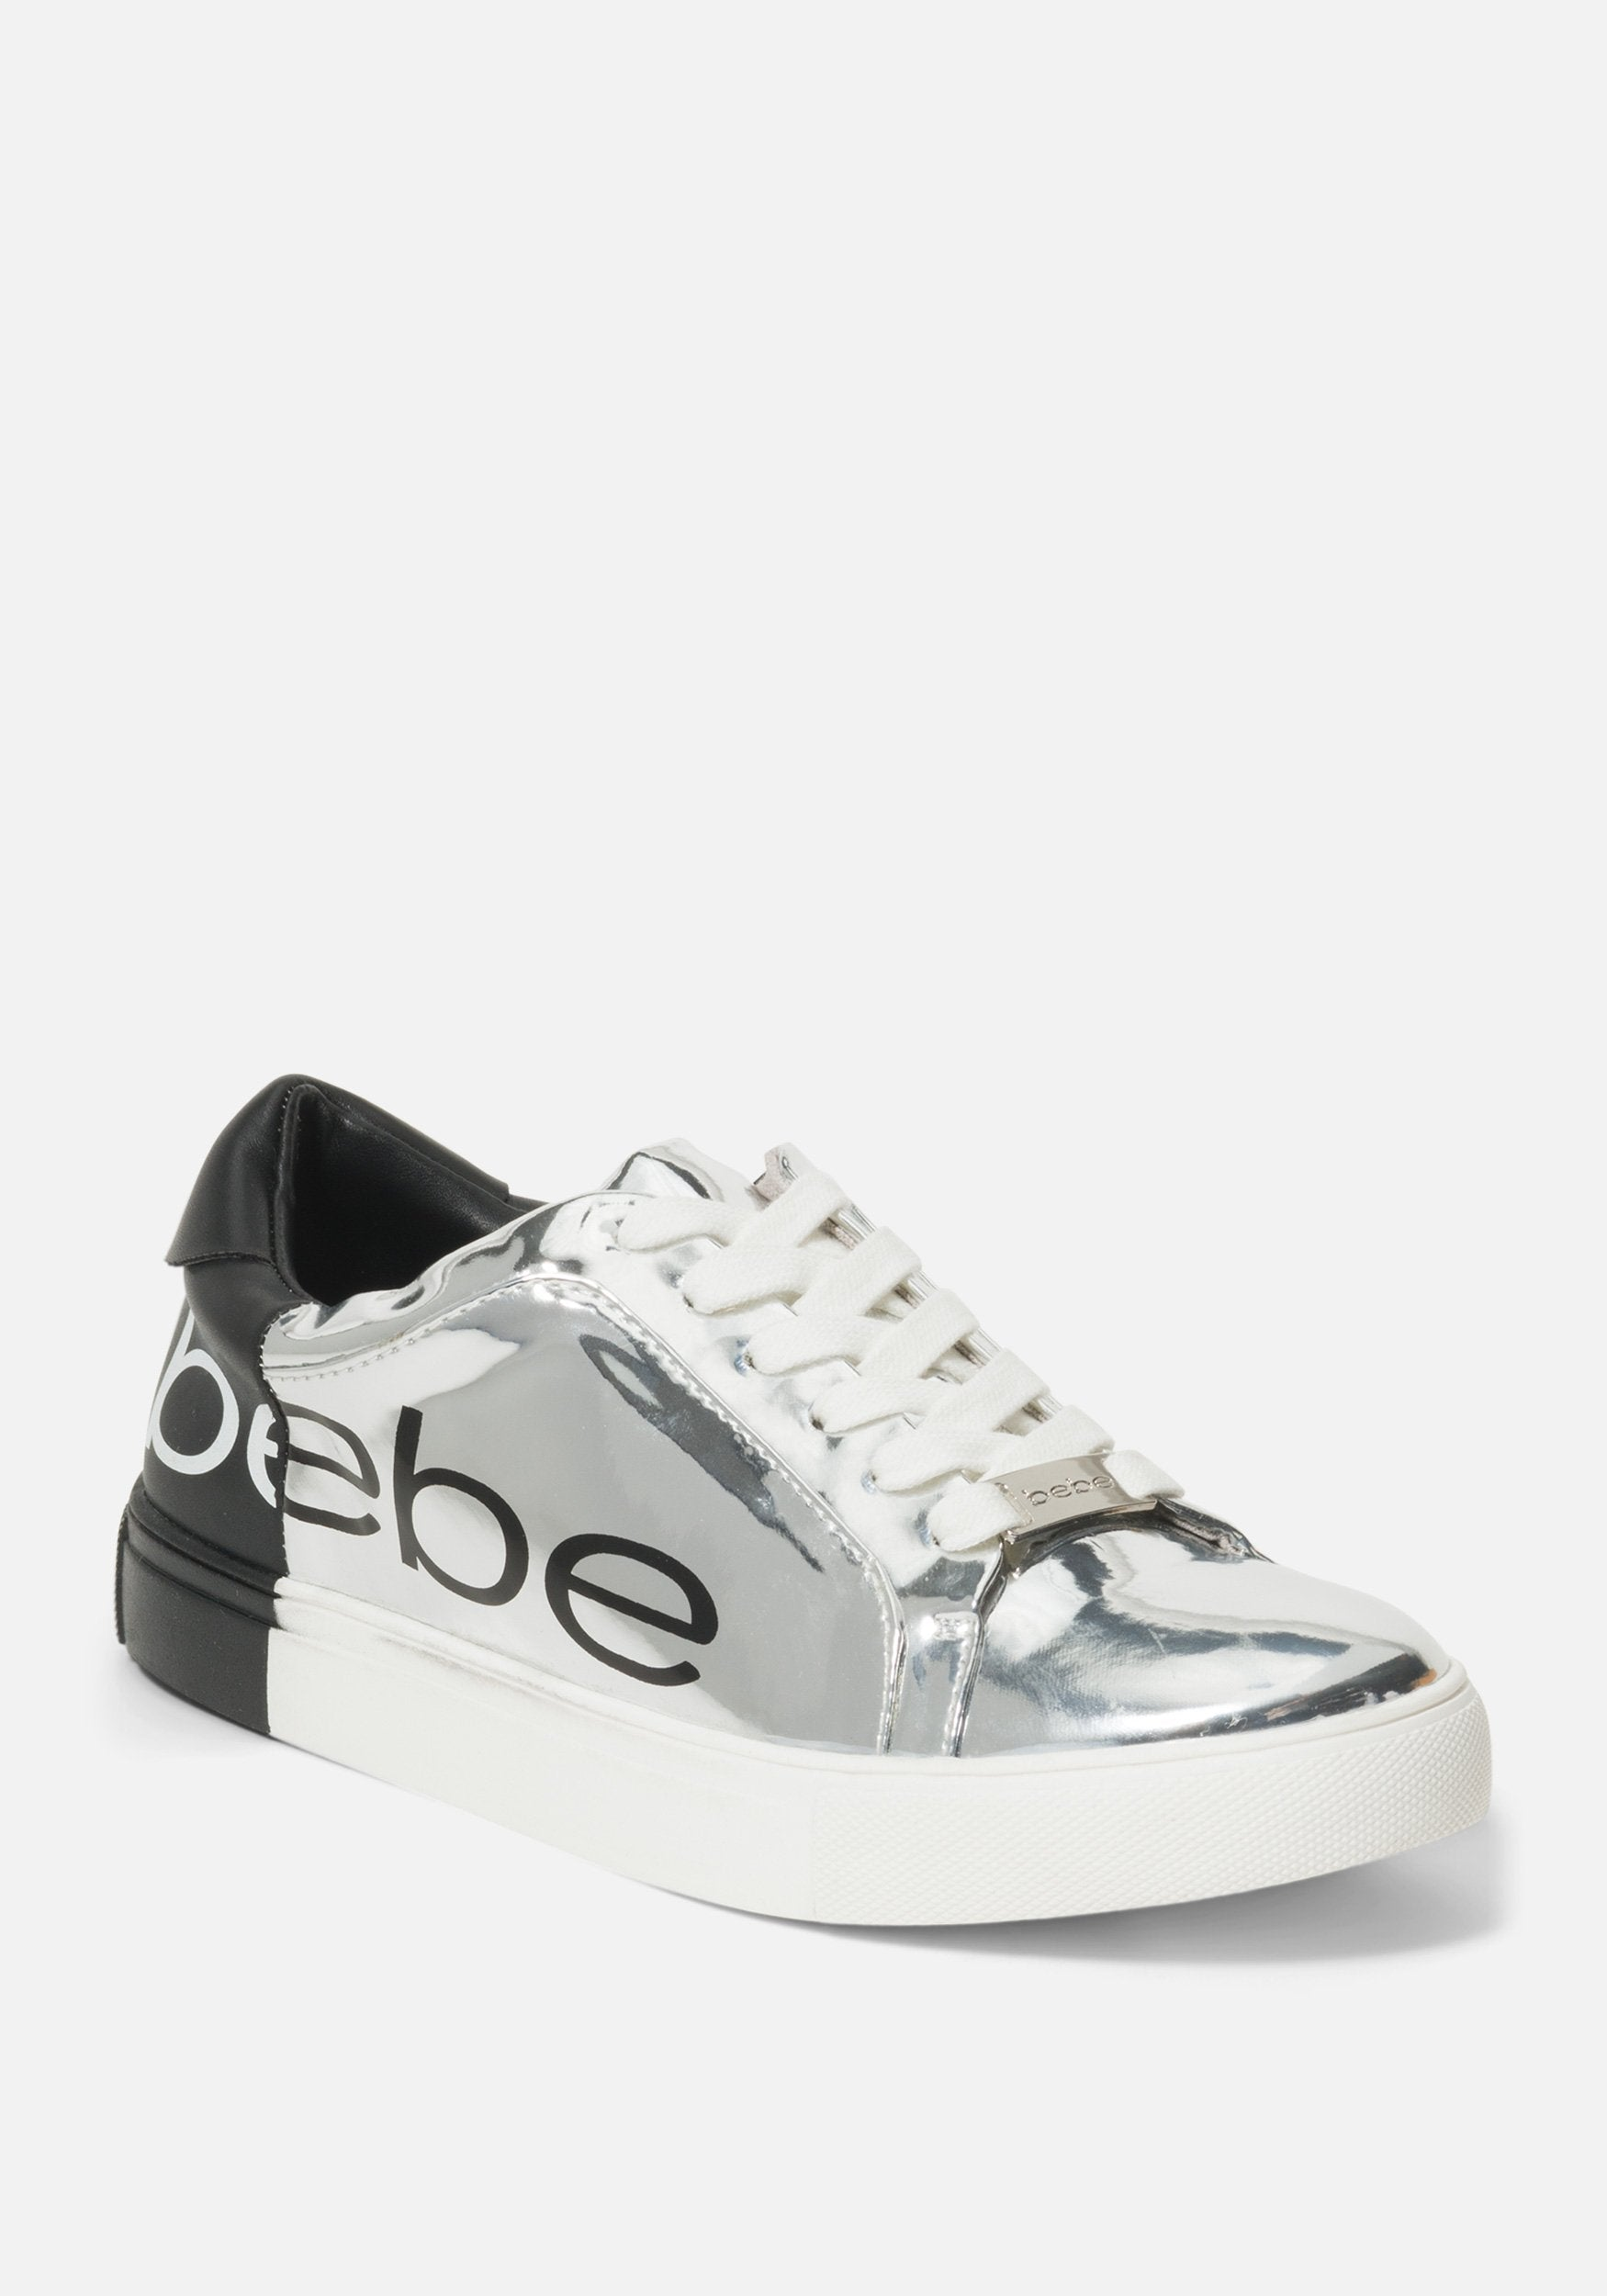 Women's Charley Bebe Logo Sneakers, Size 6 in Silver/Black Synthetic